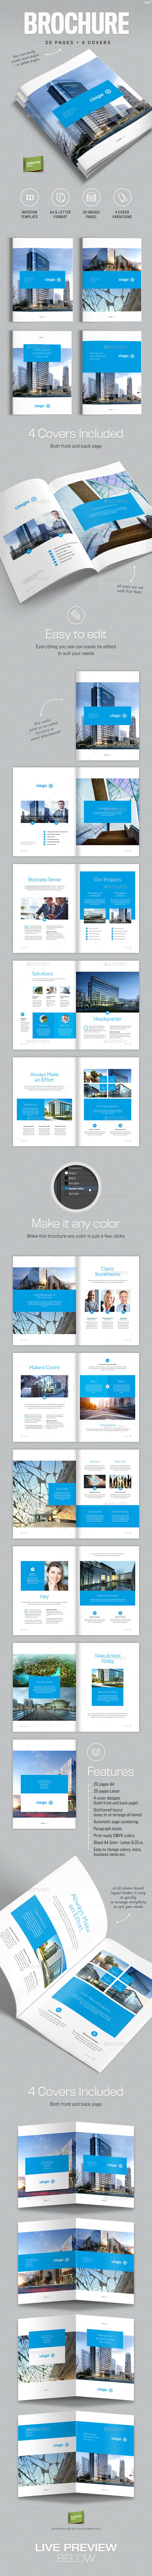 Brochure Template For Indesign Cingo By Simon Cpx Graphicriver